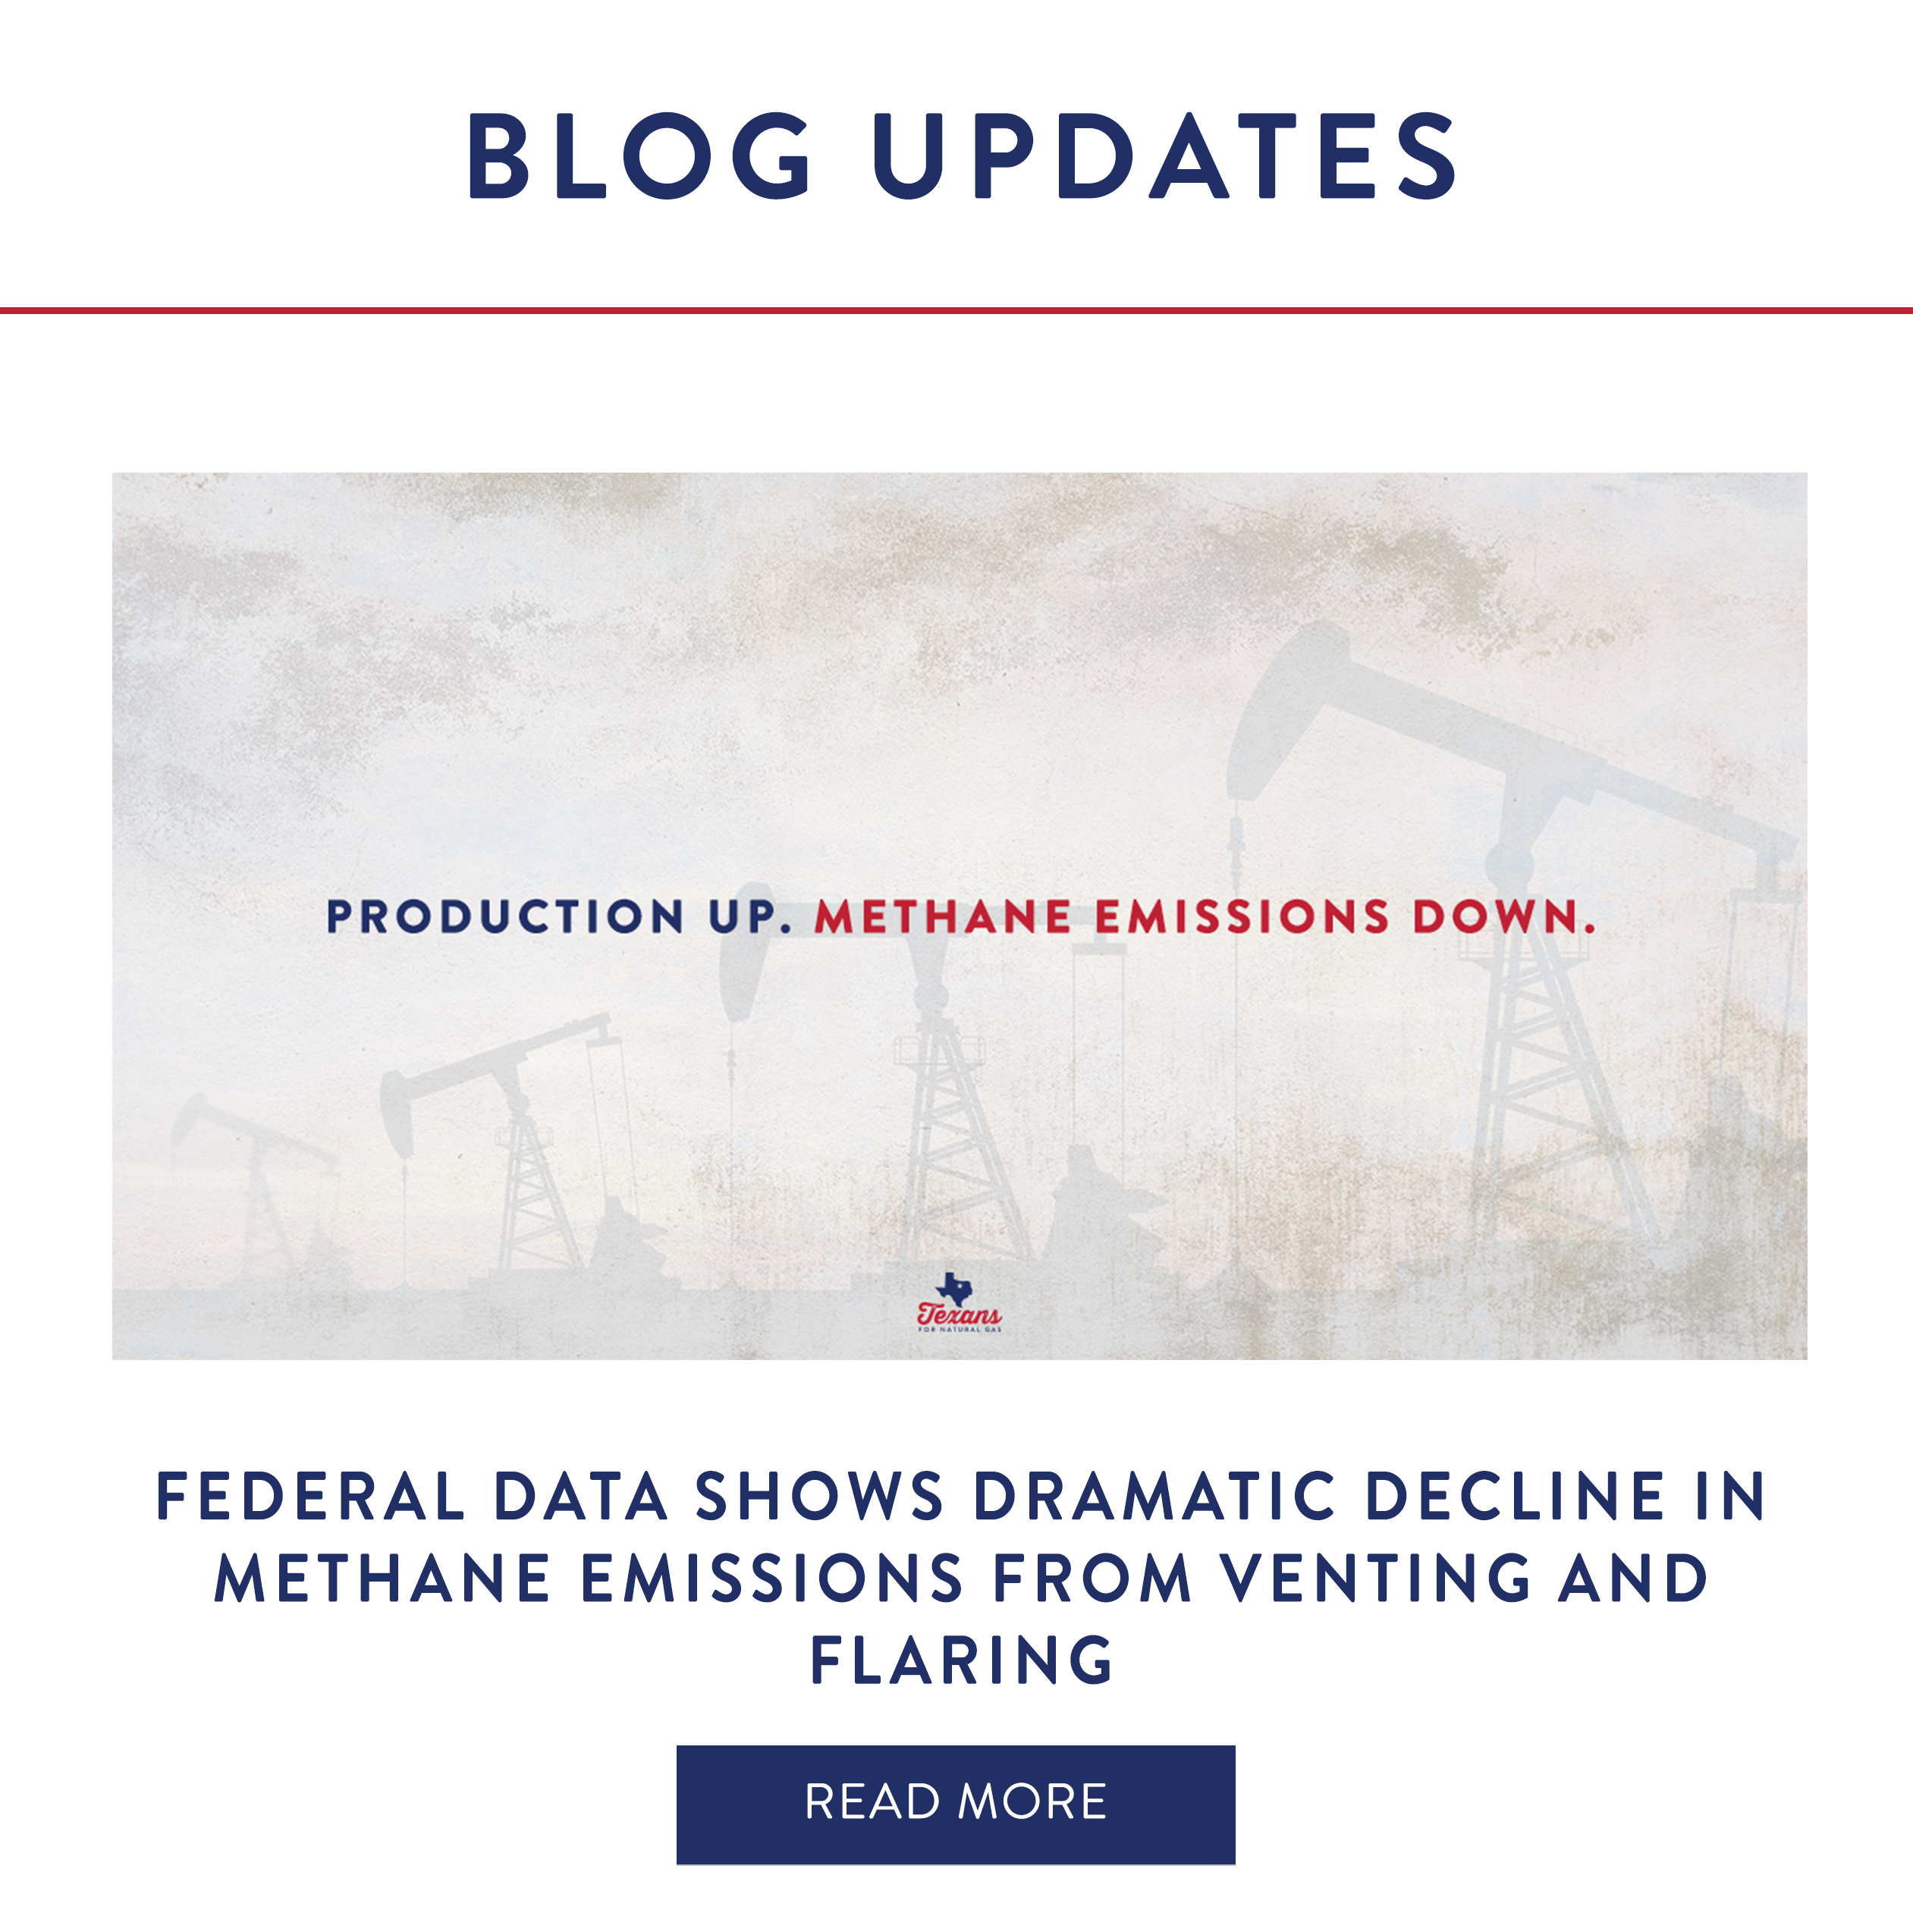 Federal Data Show Dramatic Decline in Methane Emissions from Venting and Flaring